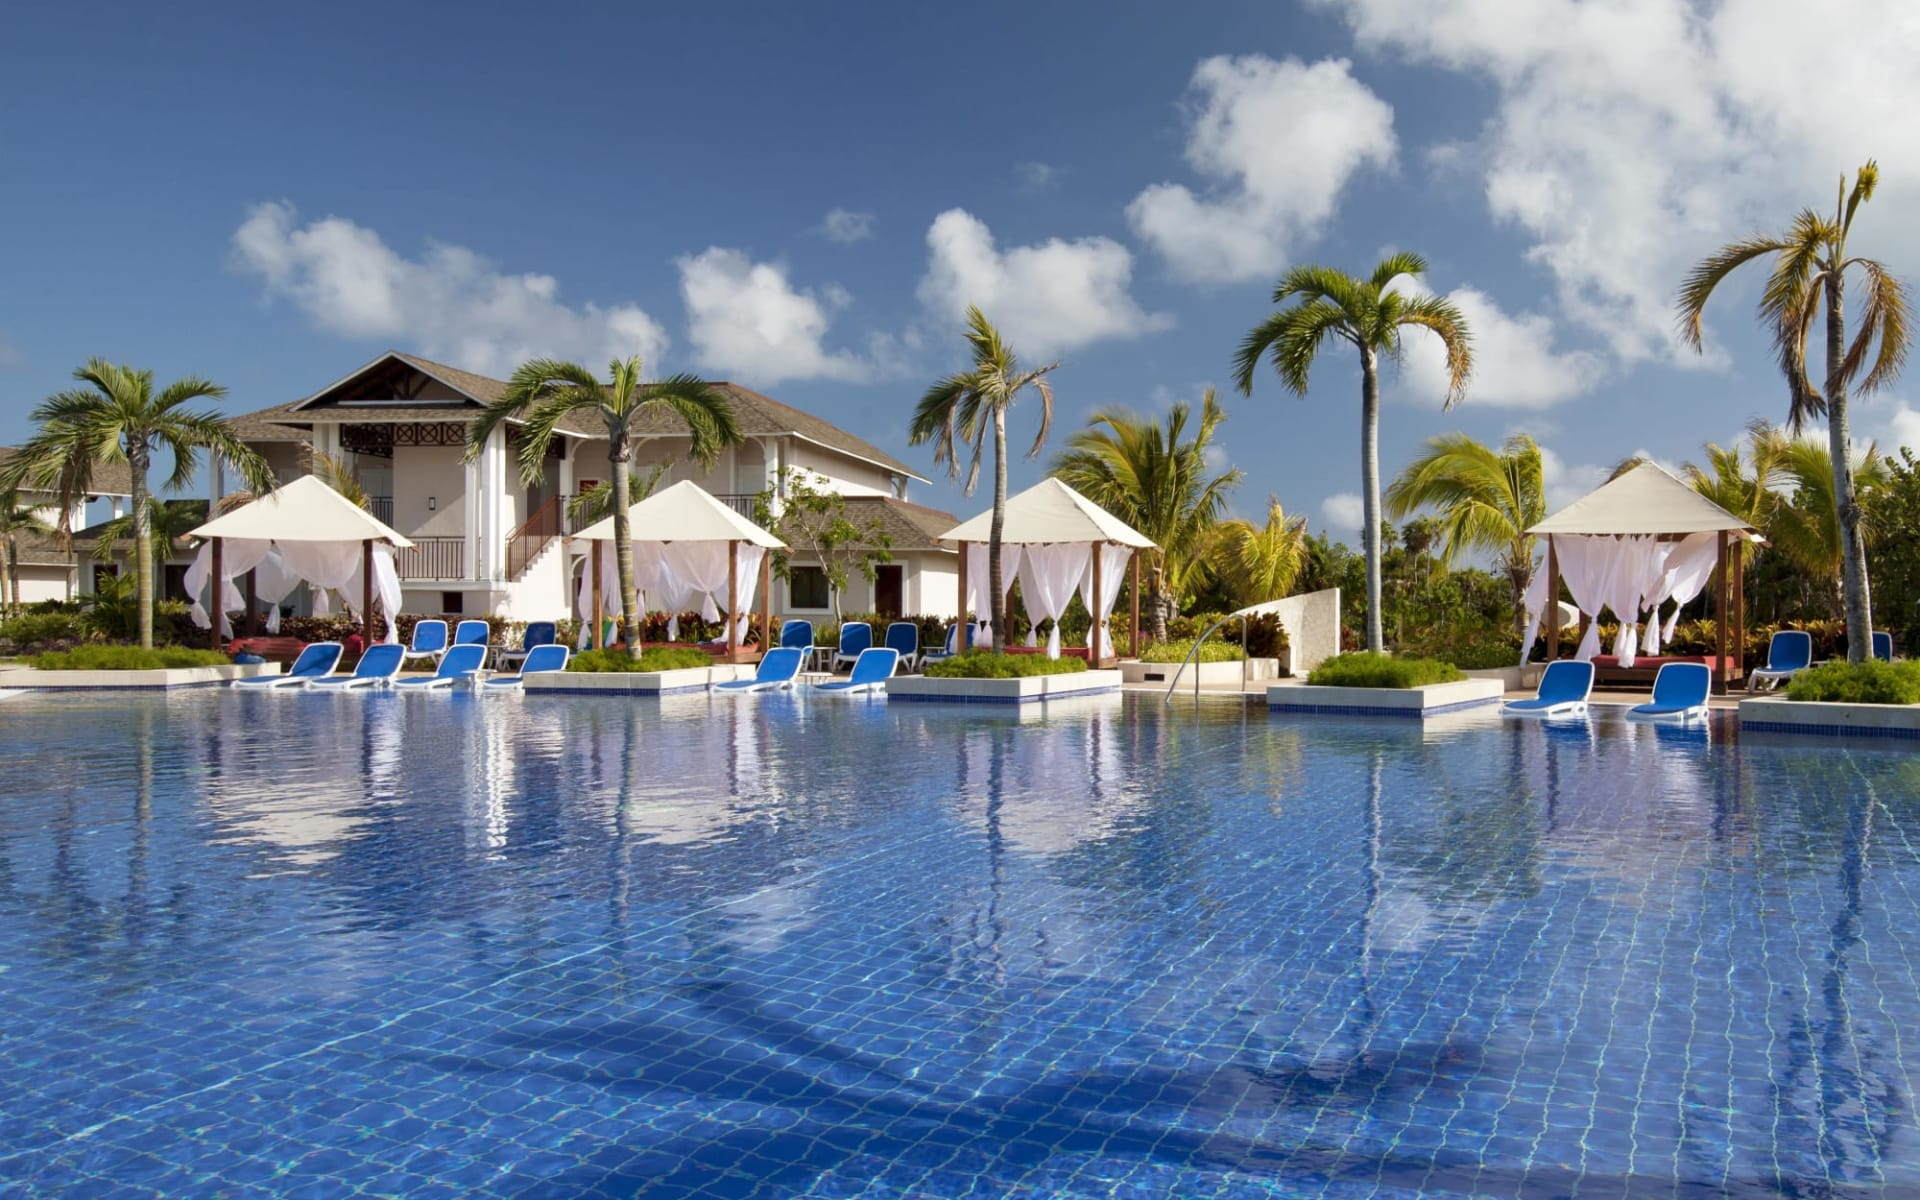 Royalton Cayo Santa Maria: Royalton Cayo Santa Maria - Palmtrees, deckchairs and swimming p